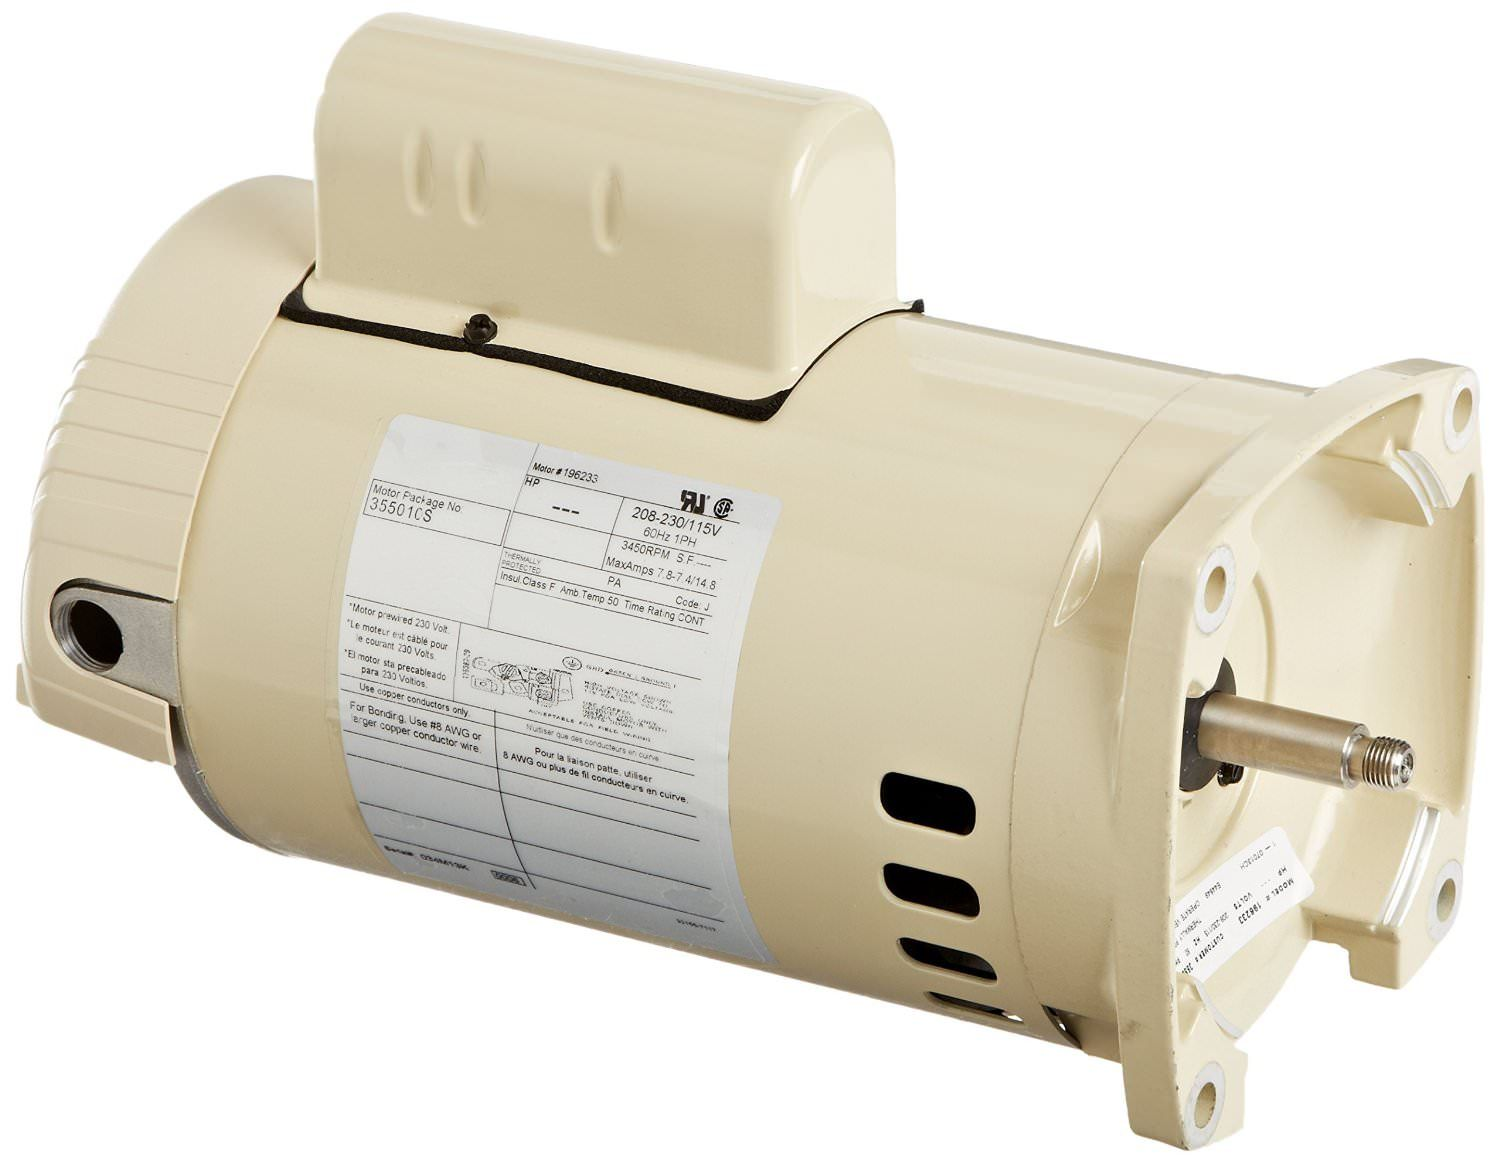 Pentair WhisperFlo 1 HP - 1.5 HP Motor 071314S / 355010S - 115/208-230V - Energy Efficient